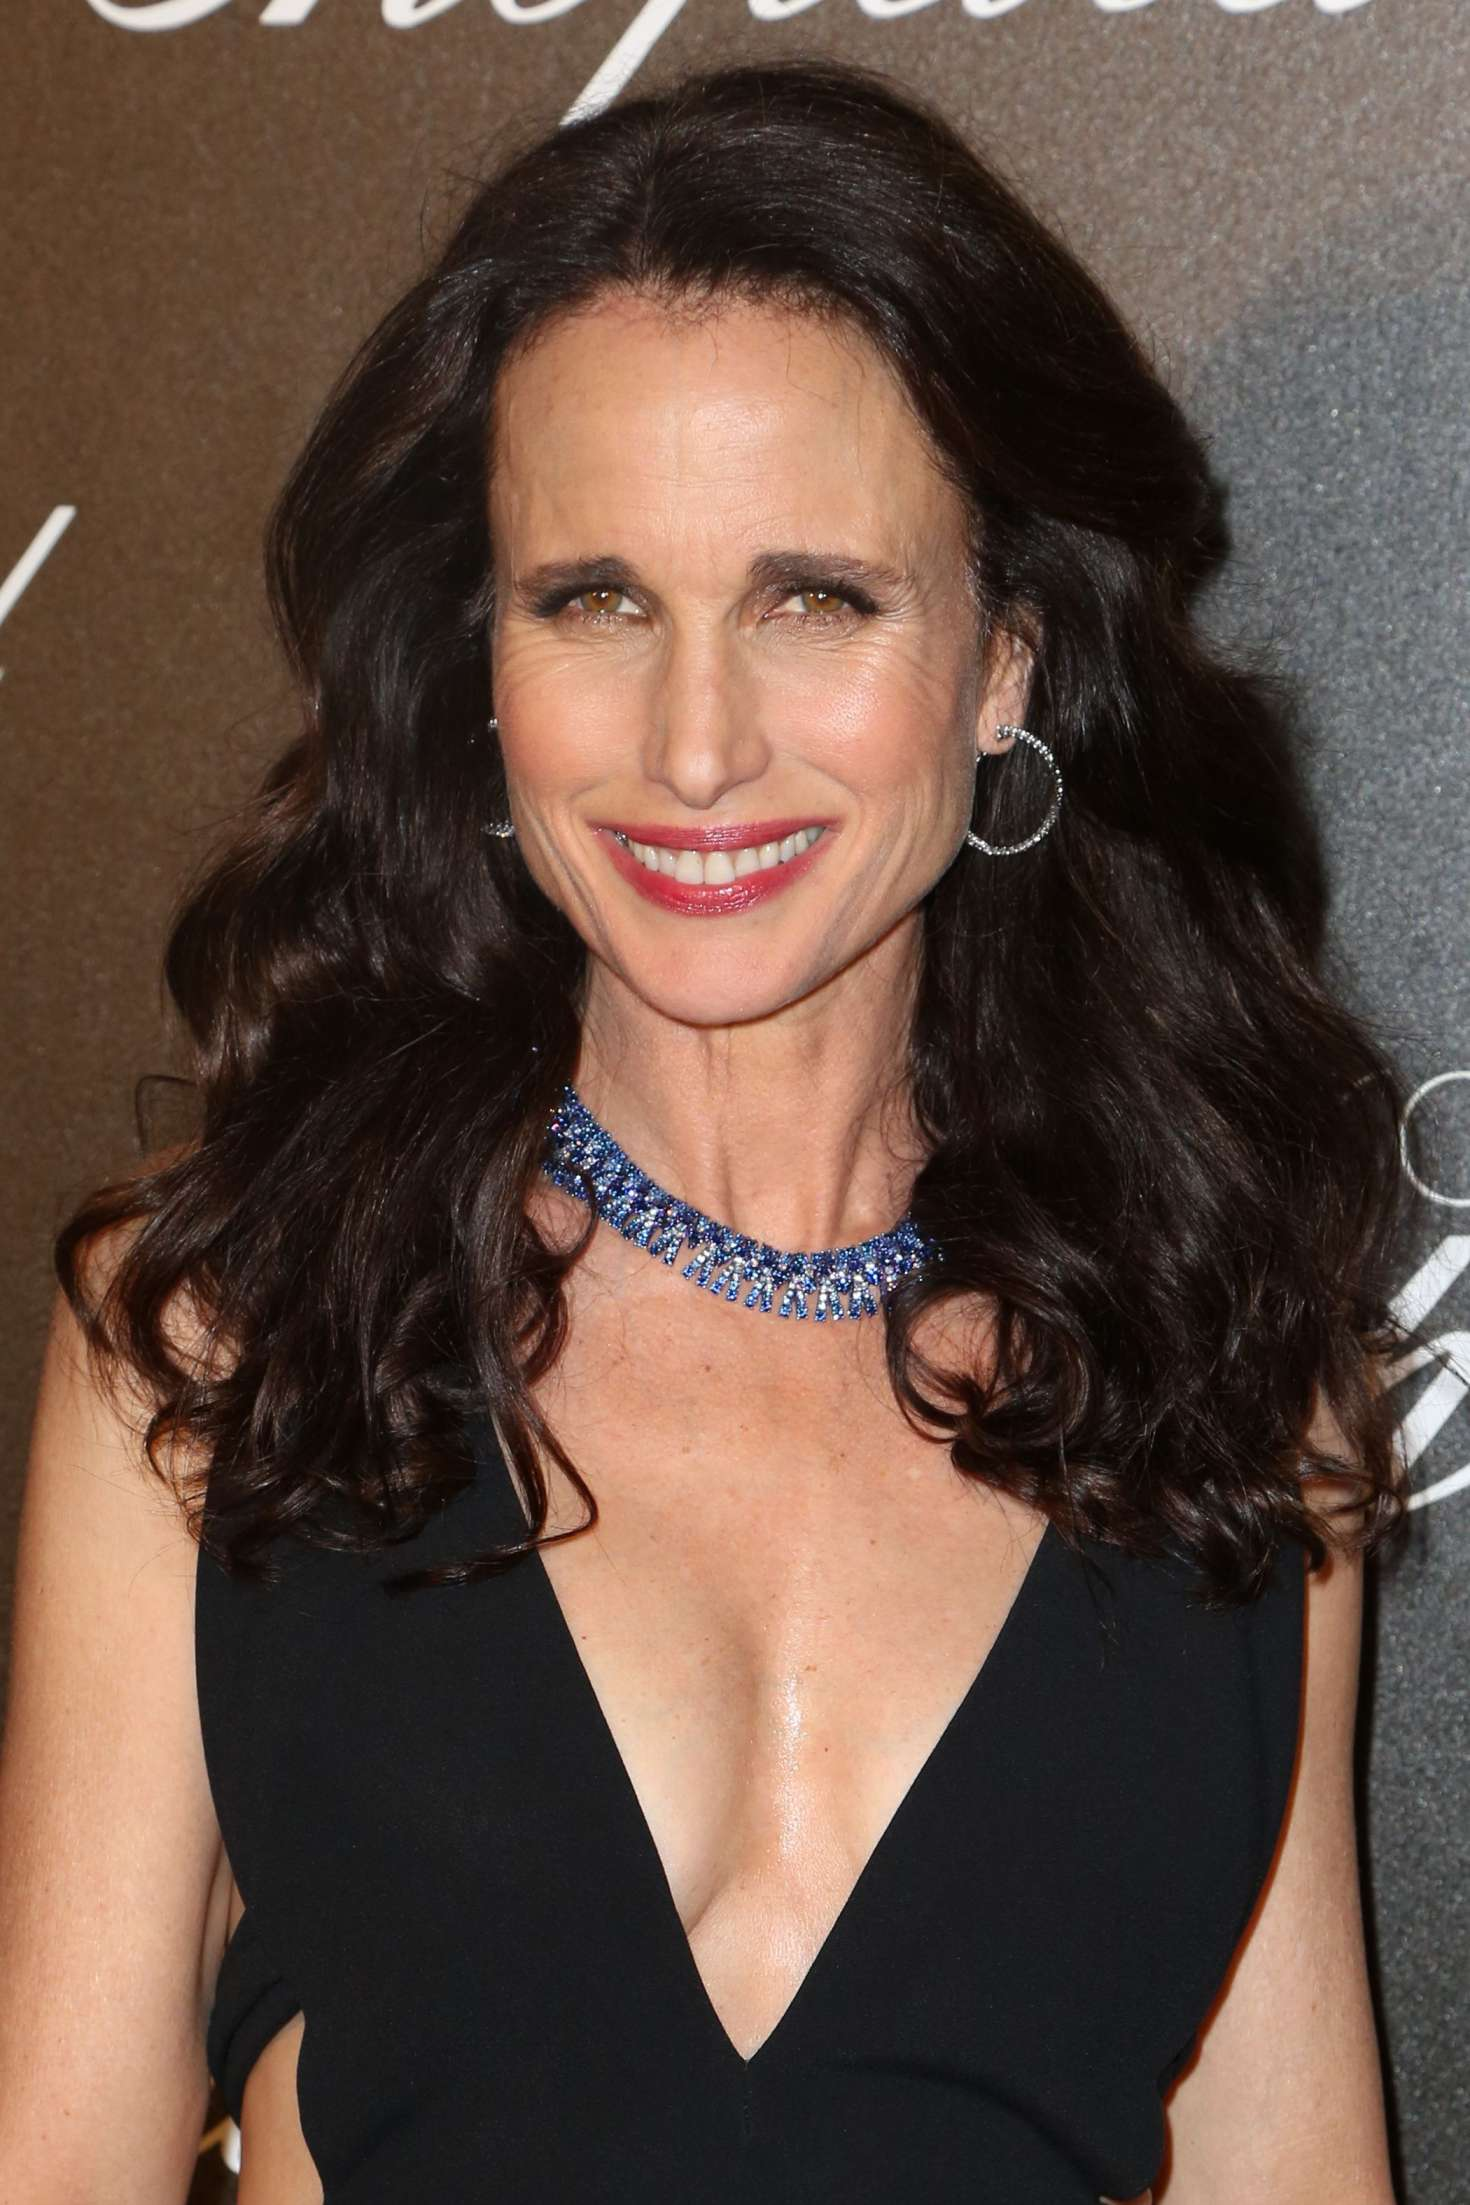 Andie MacDowell naked (27 photo), pics Erotica, Instagram, in bikini 2020